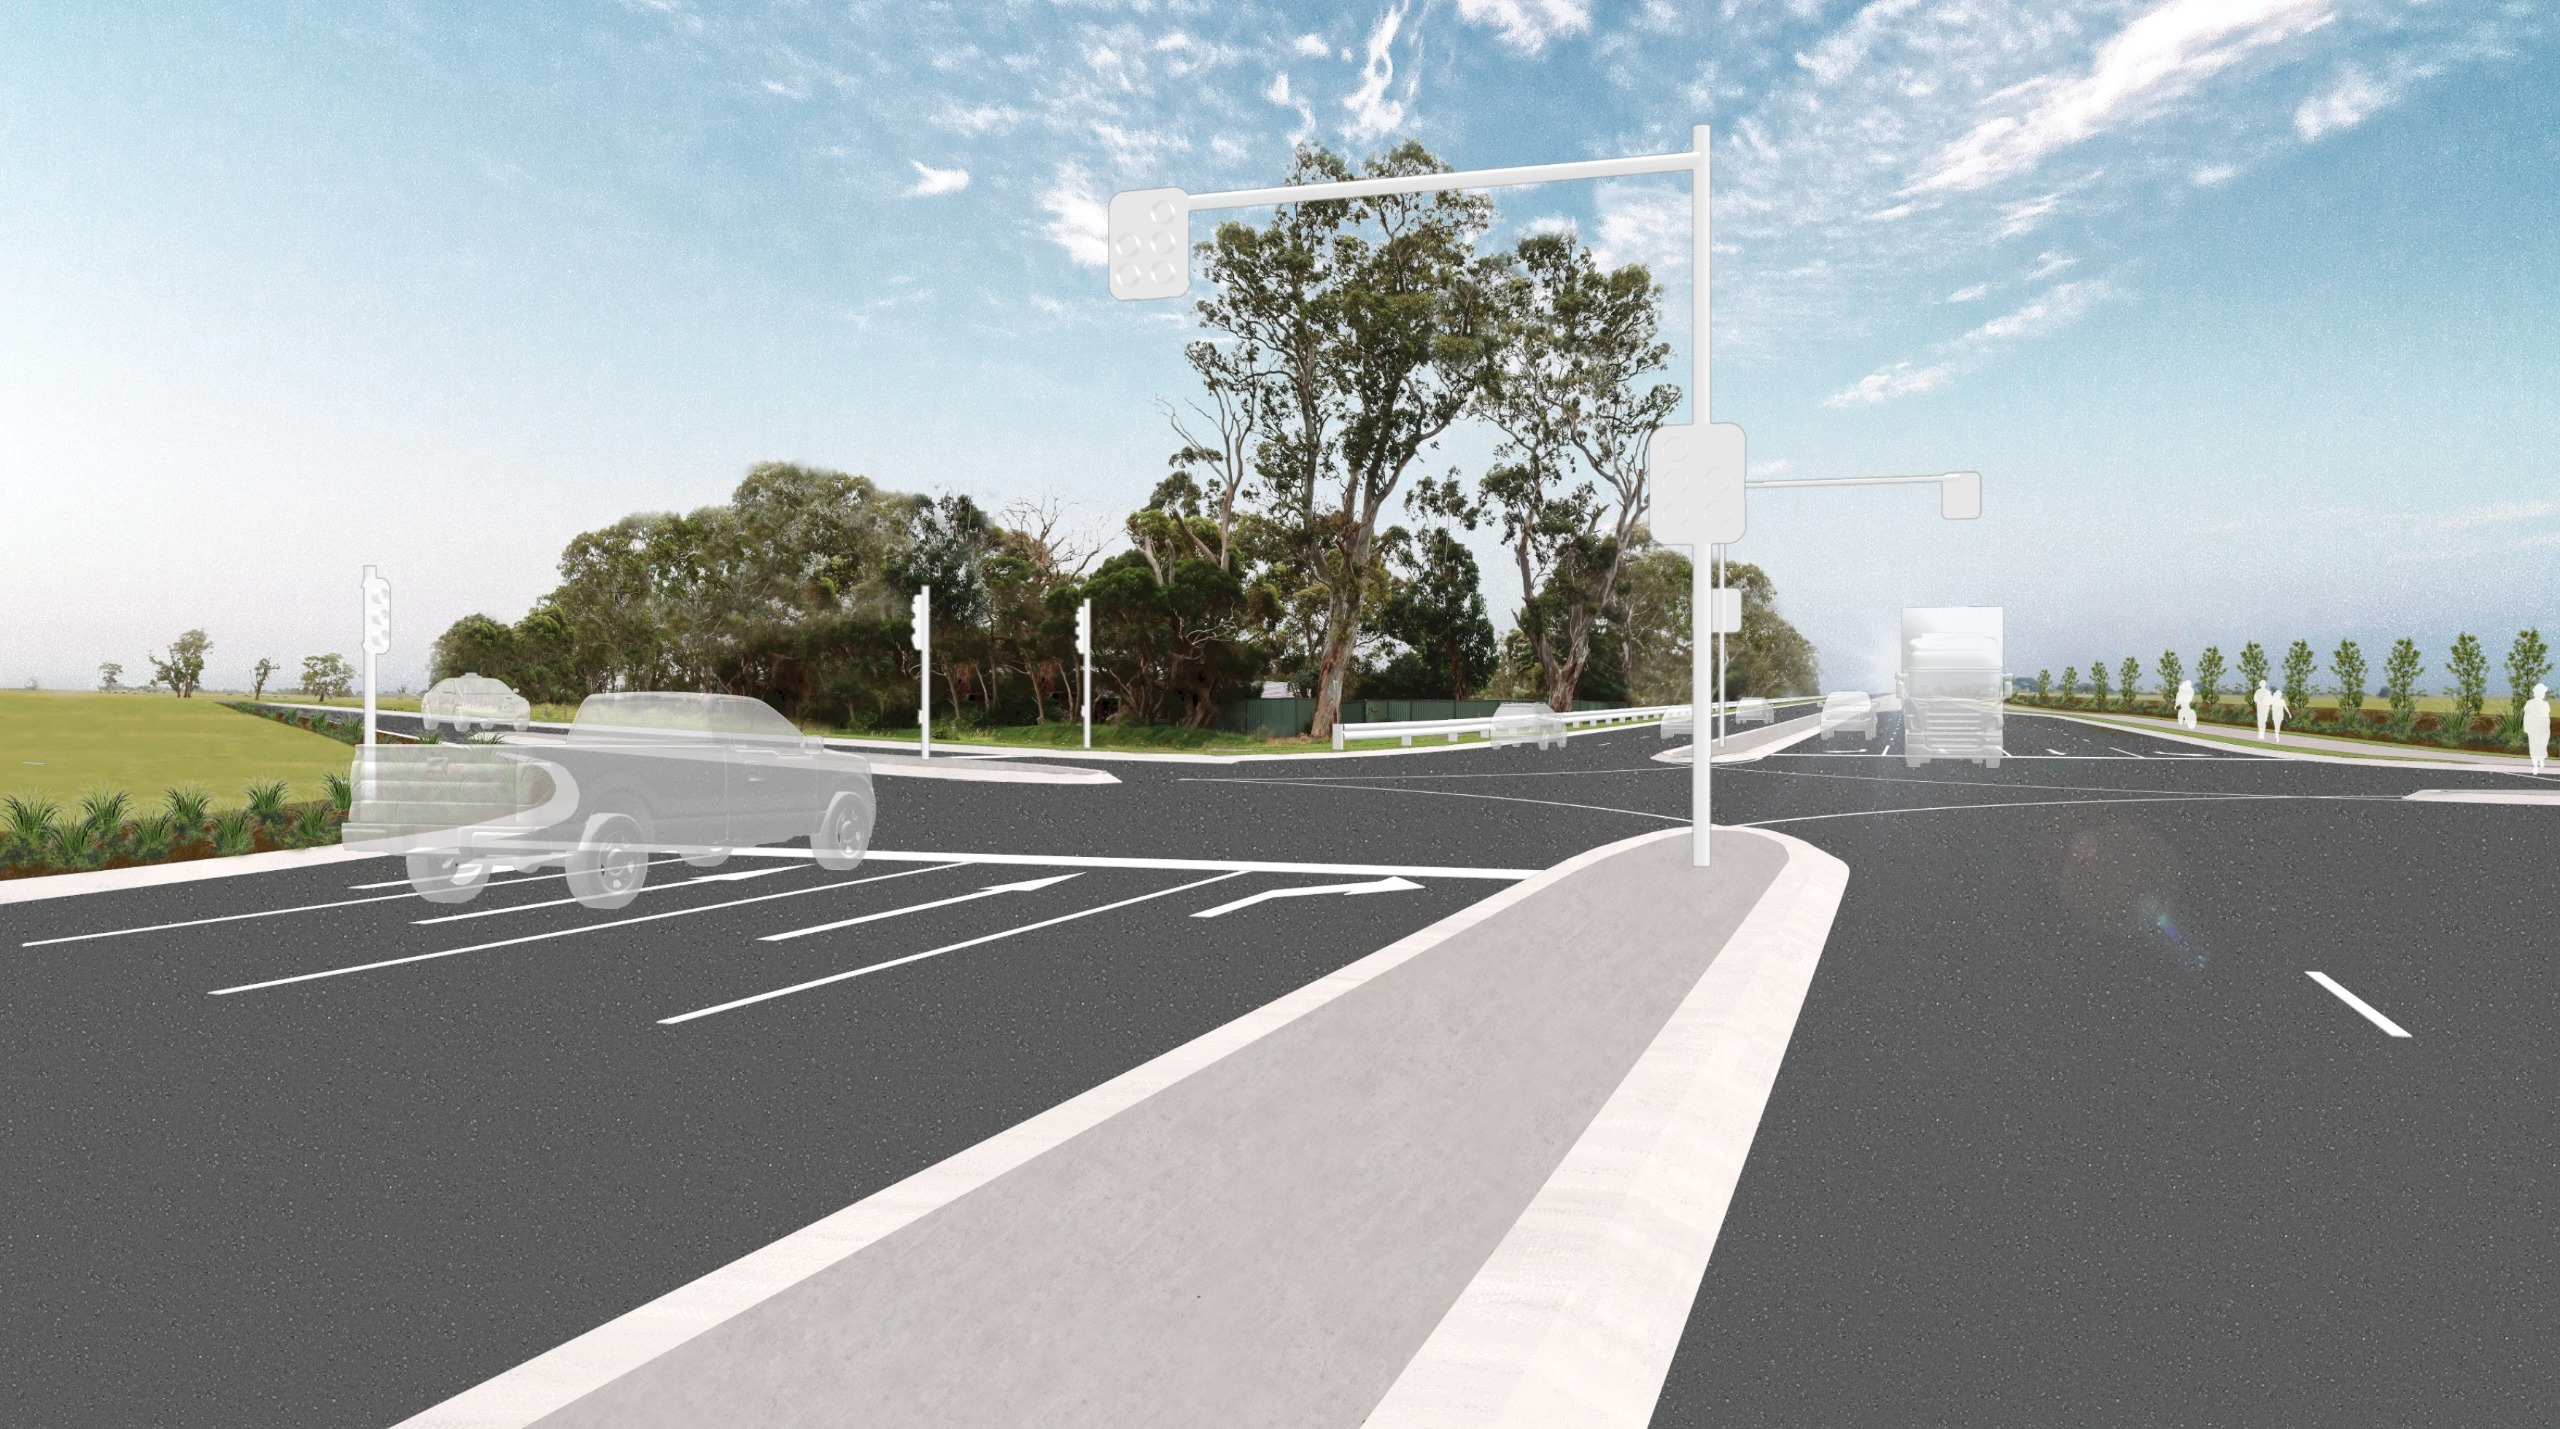 Artist's impression of Taylors Road intersection 1 year after project completion